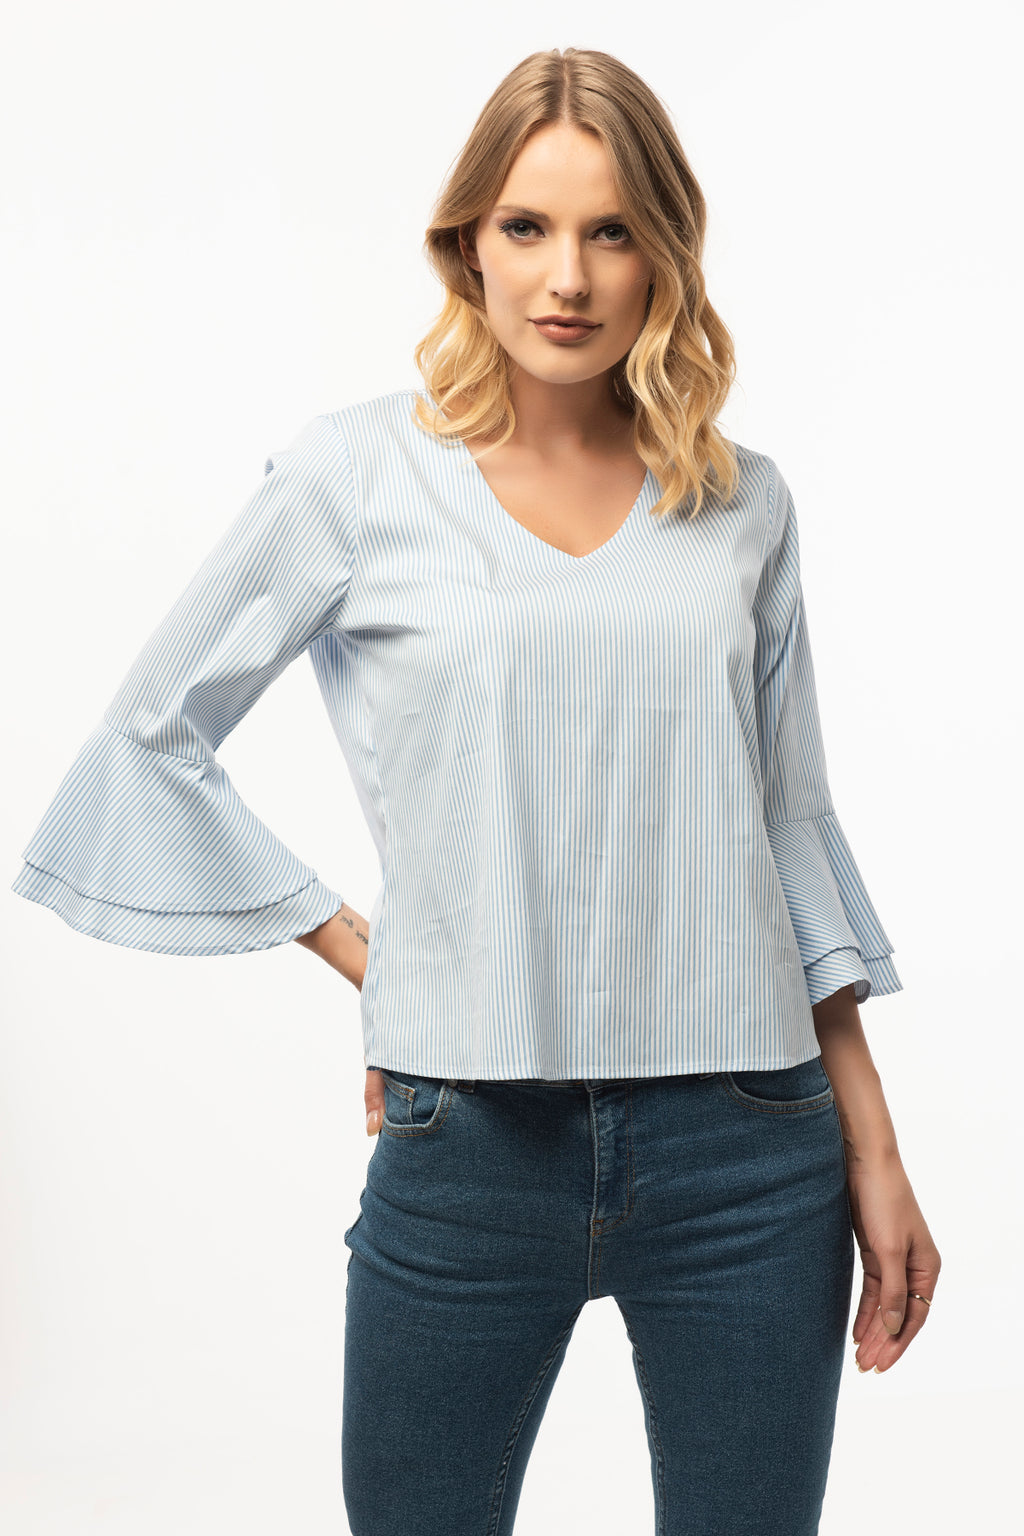 V Neck Light Blue Striped Blouse- 3/4 Sleeve